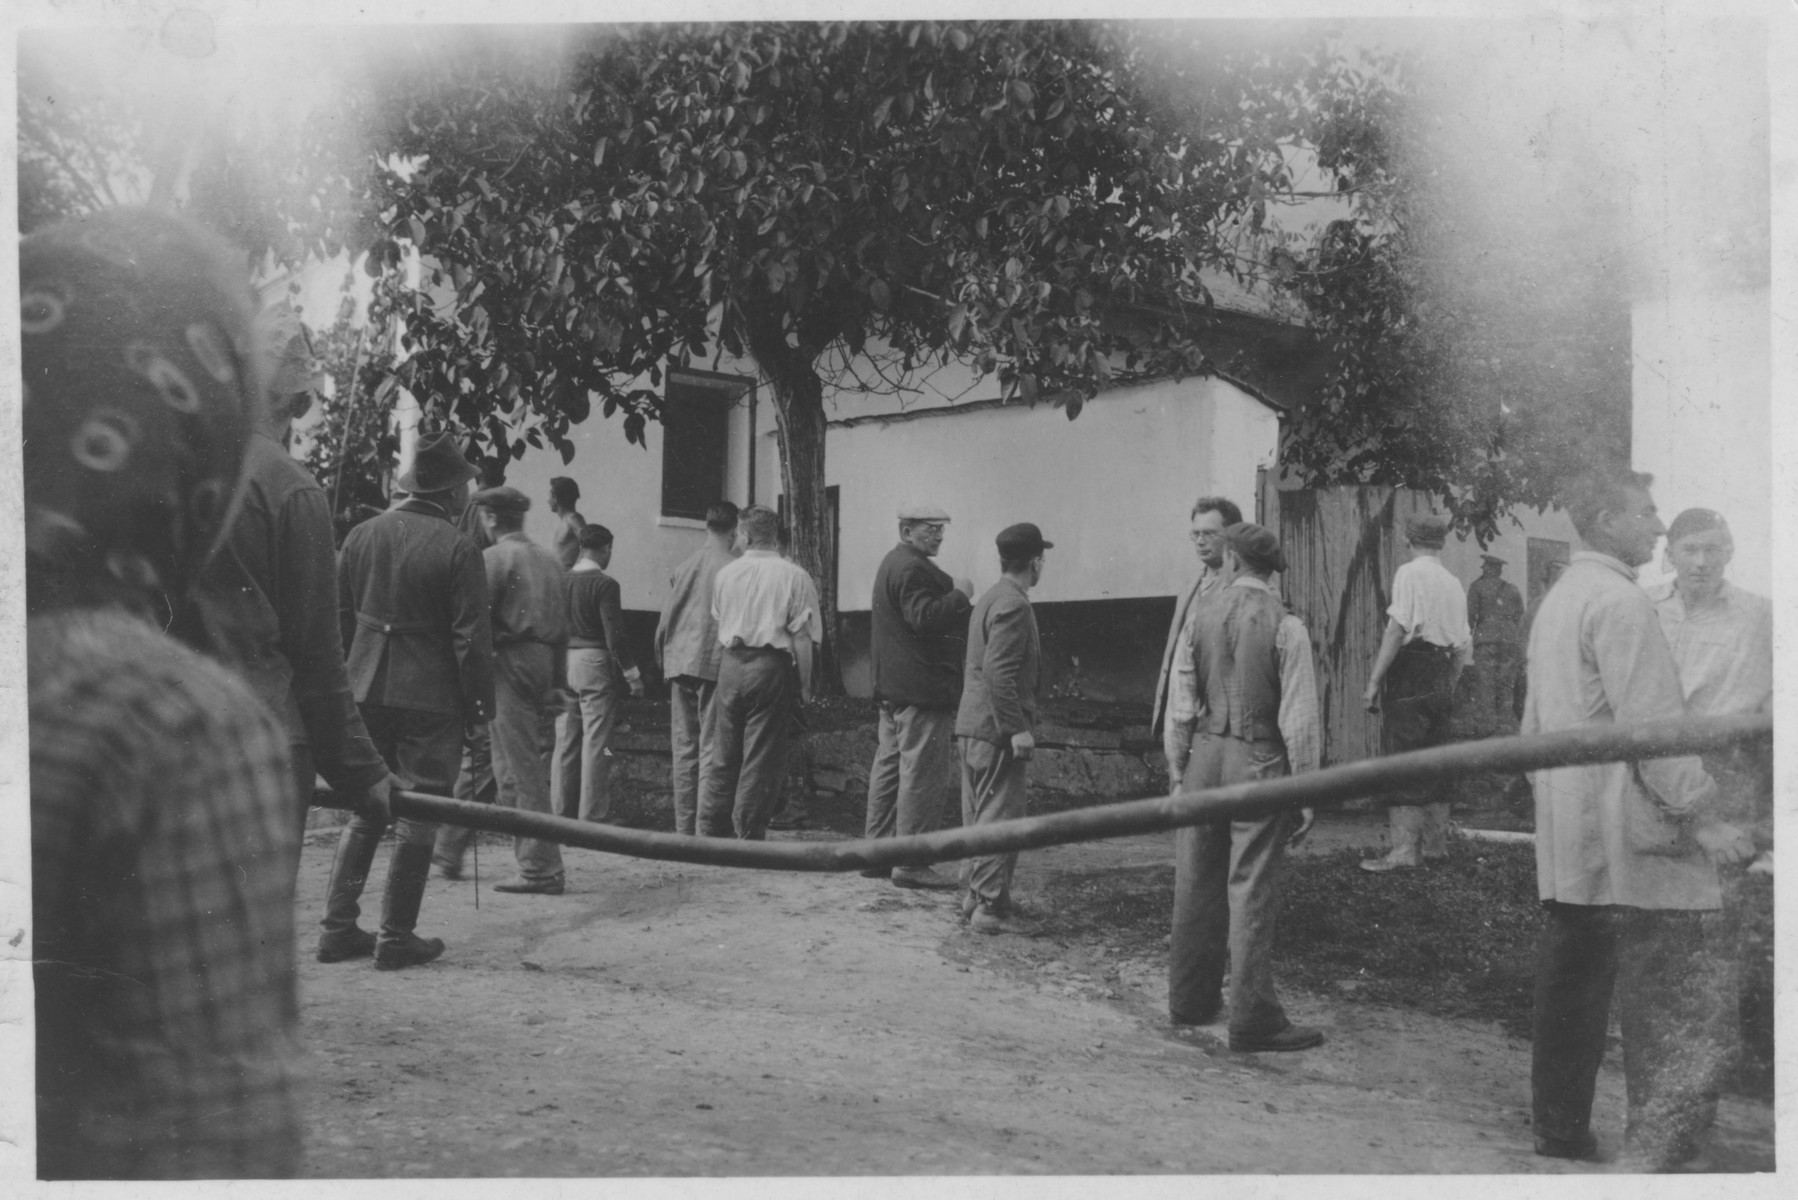 Boellmann (third from the left), the first chief of the Lipa camp, oversees Jewish workers extinguishing a fire.